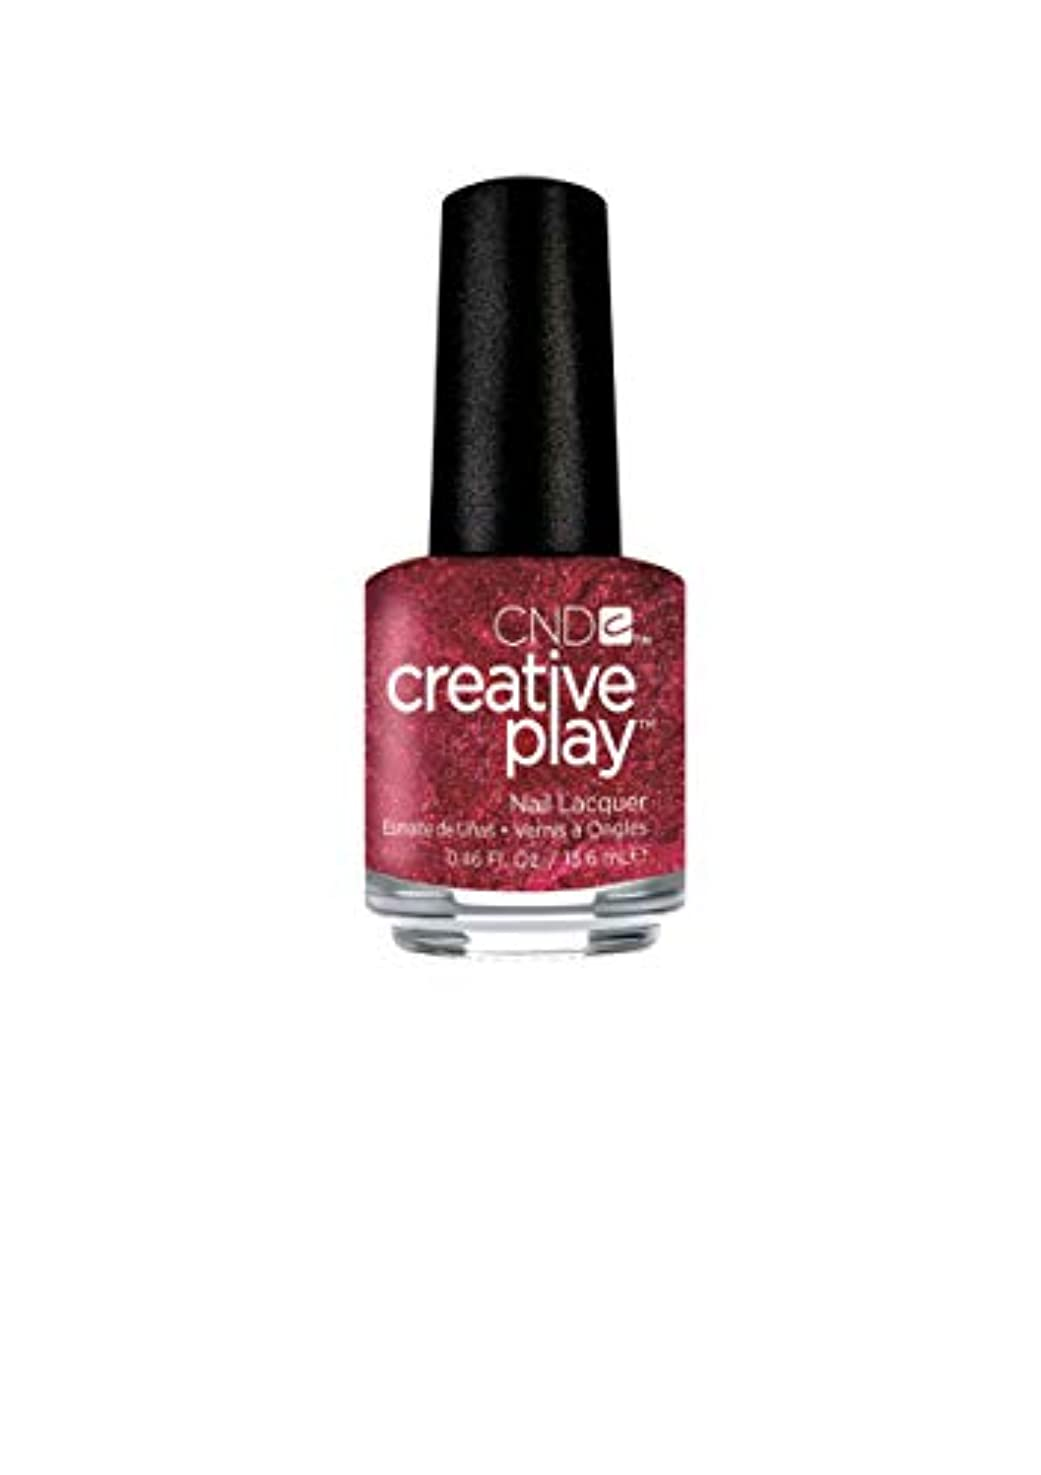 CND Creative Play Lacquer - Crimson Like it Hot - 0.46oz / 13.6ml